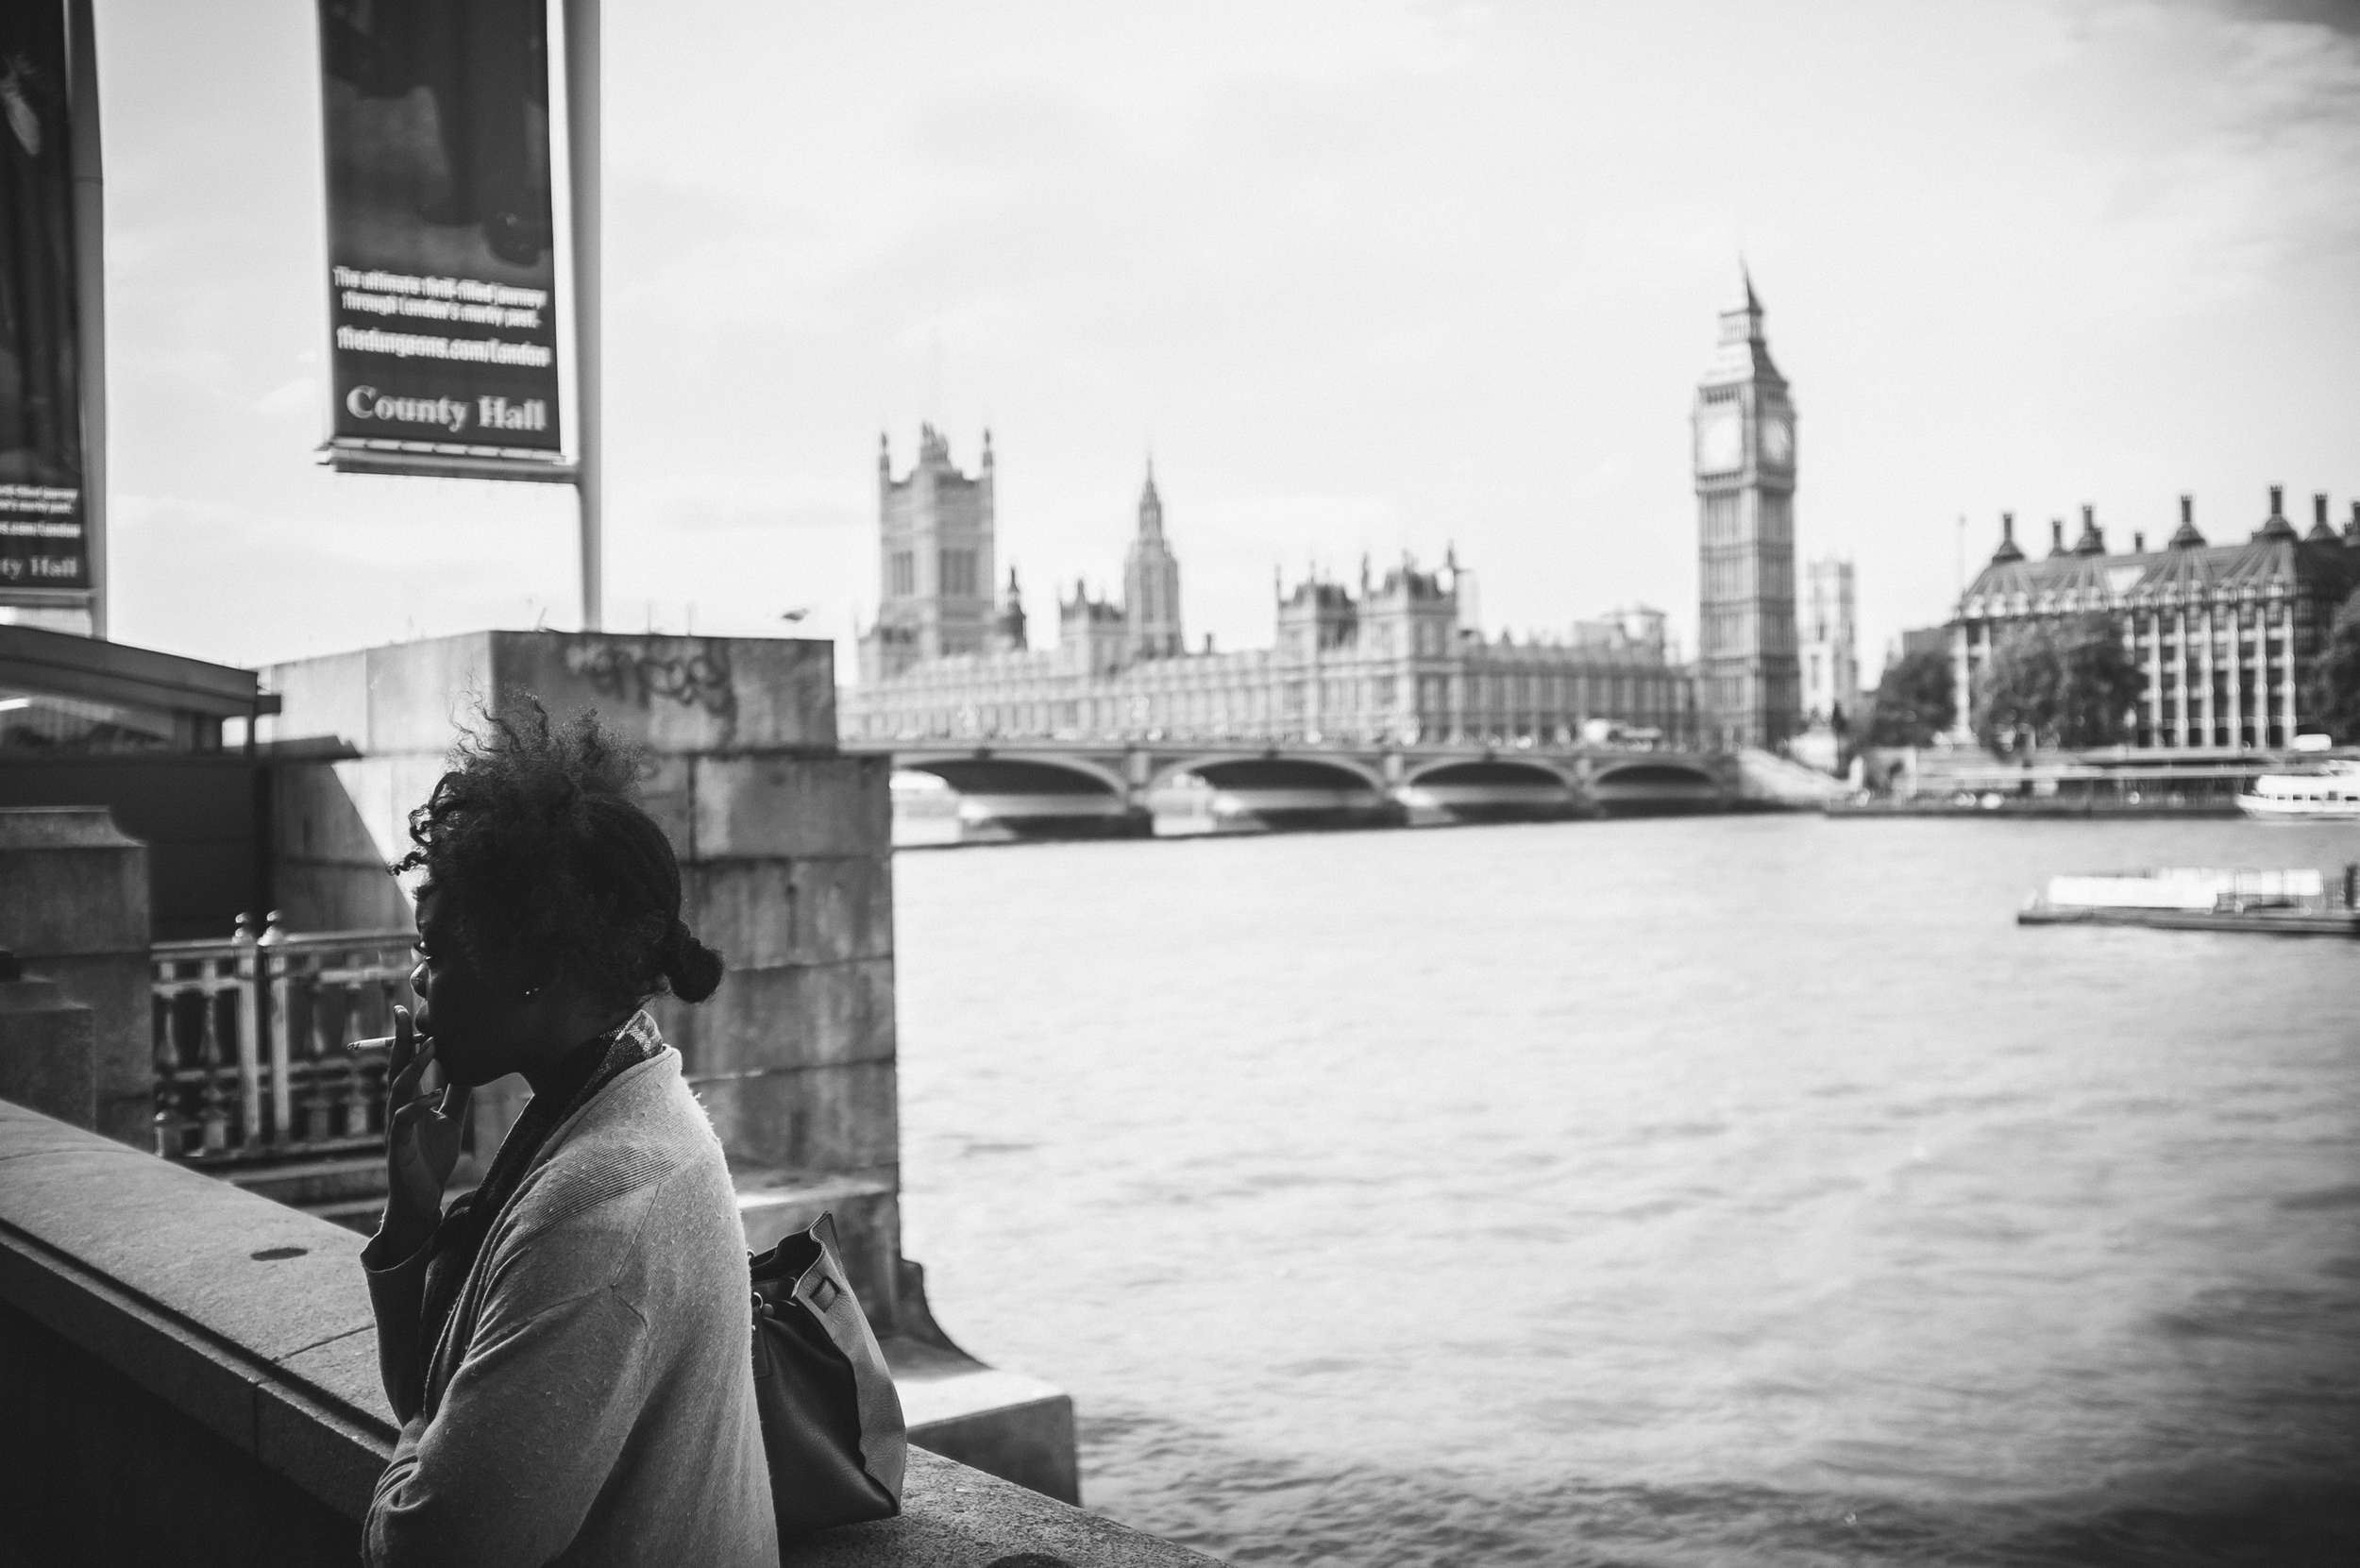 london_street_photography_with_the_fuji_x100-2.jpg